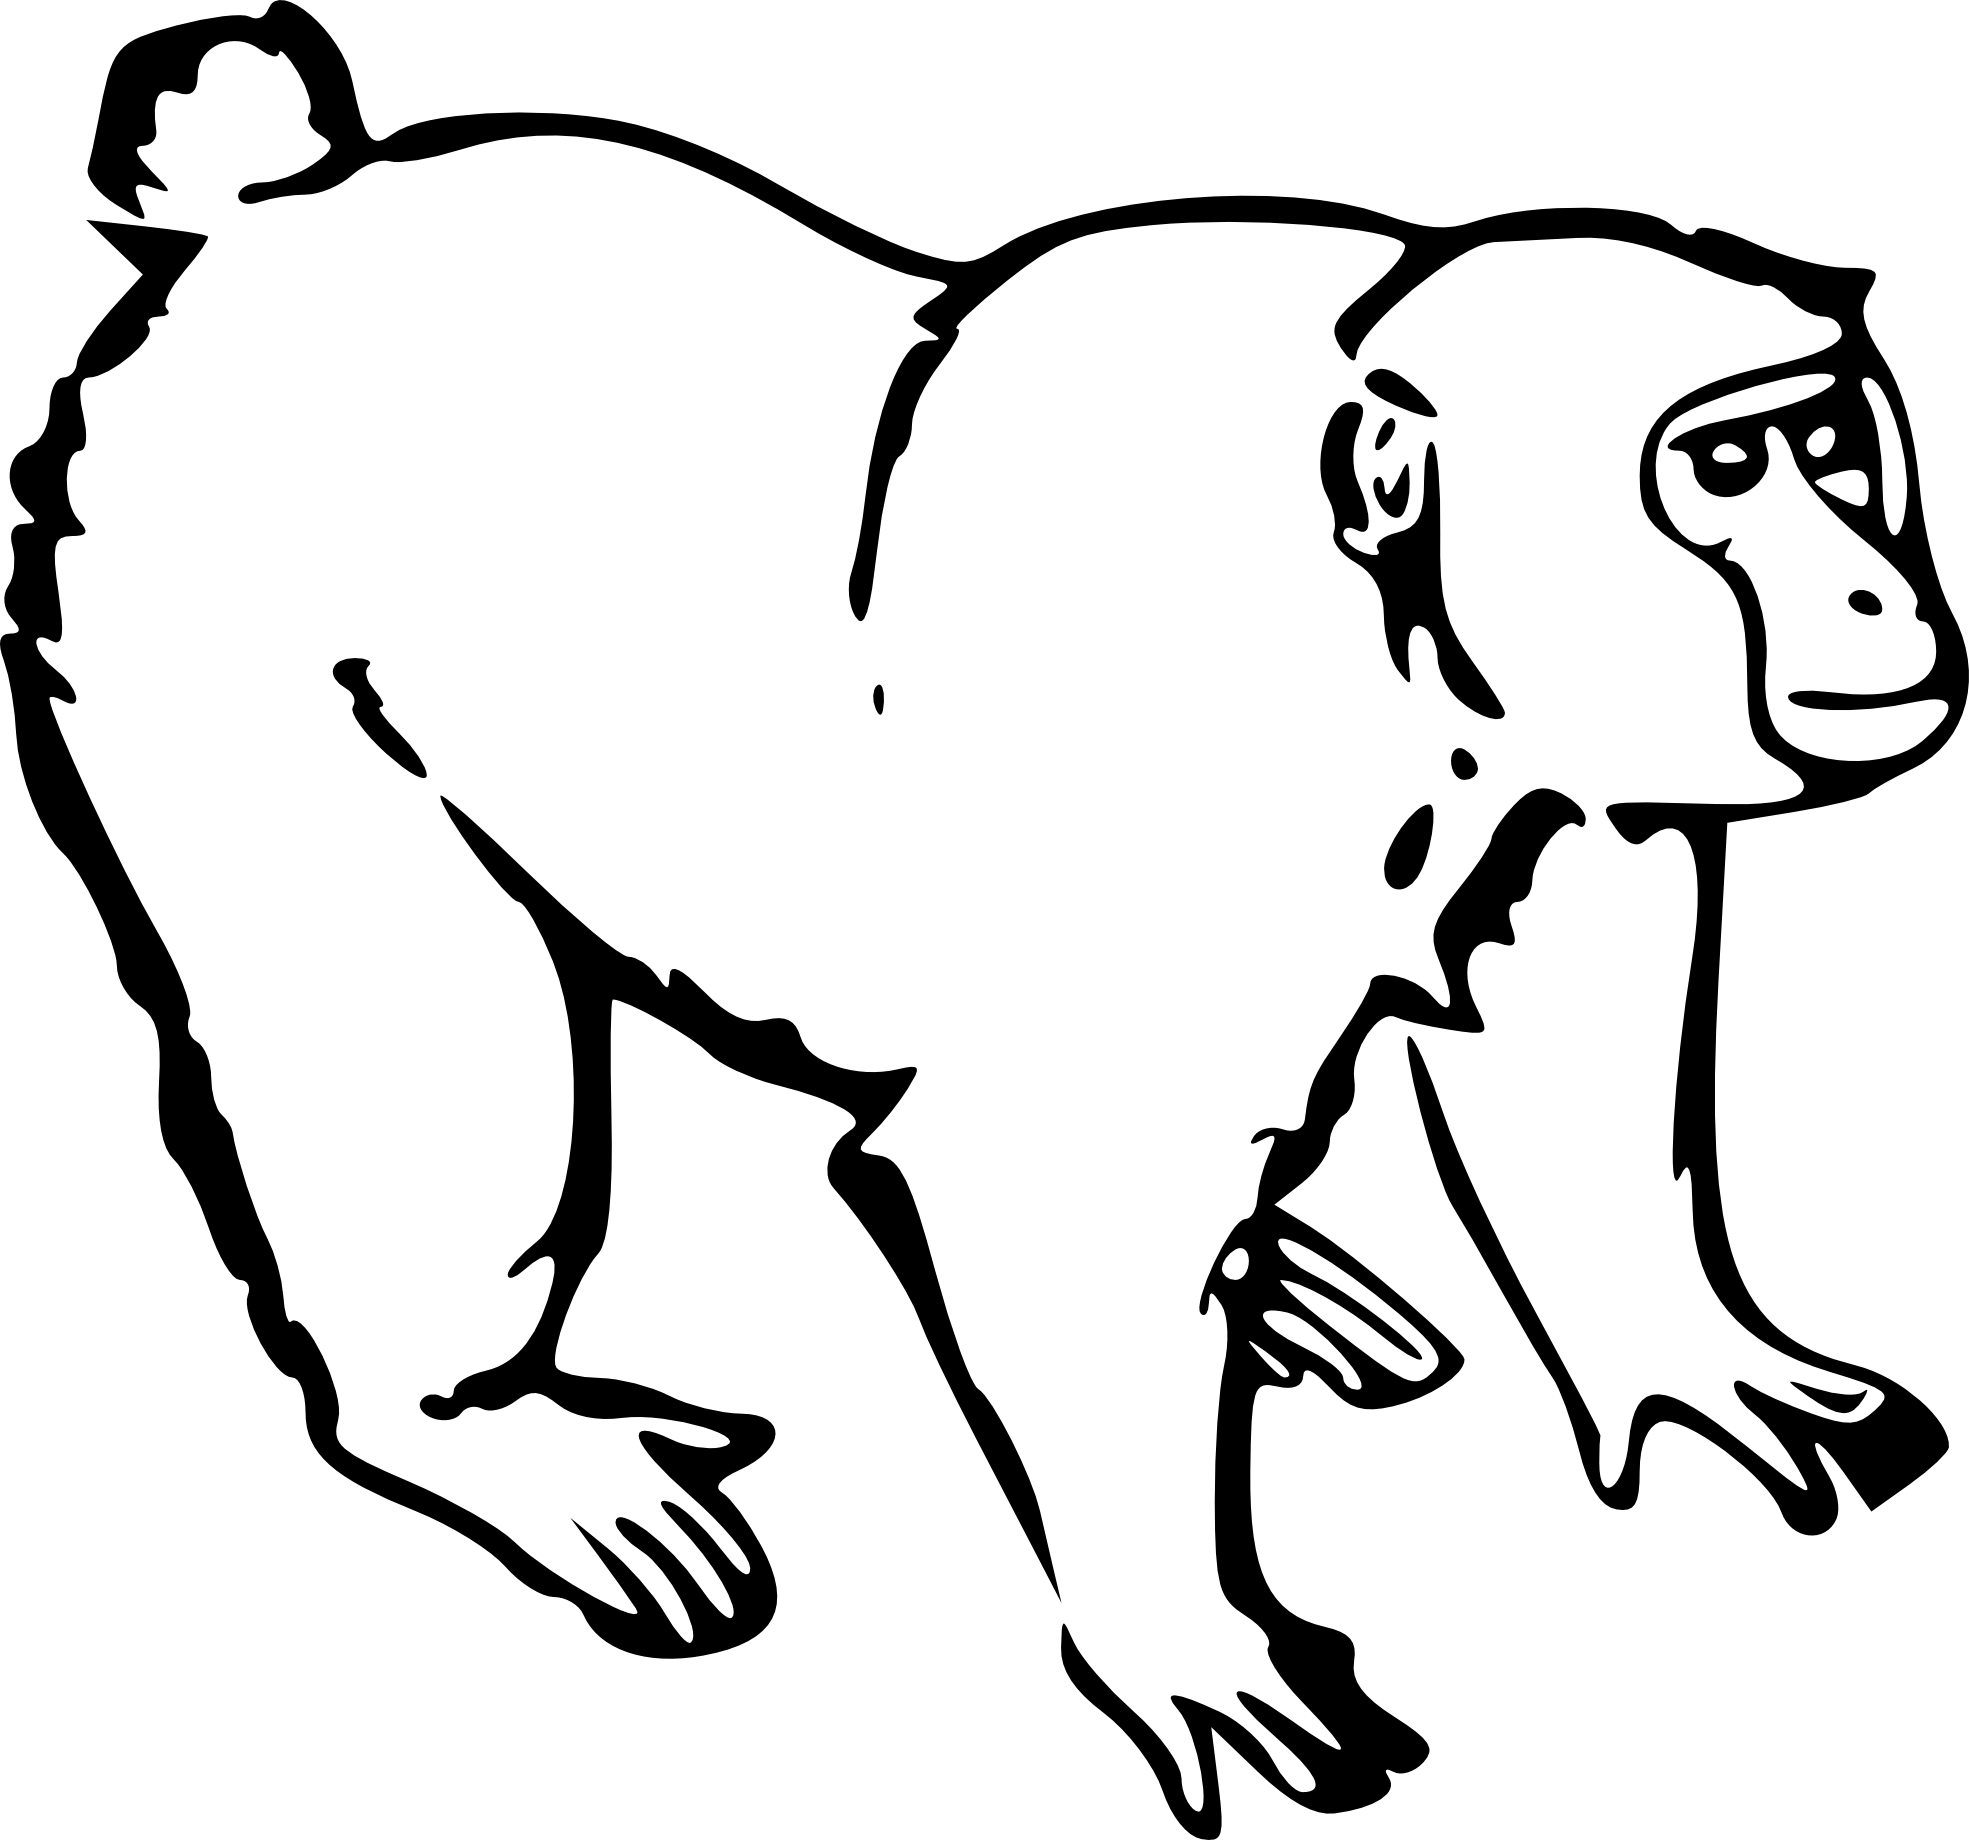 Line Drawing Monkey : Monkey clip art black and white clipart panda free